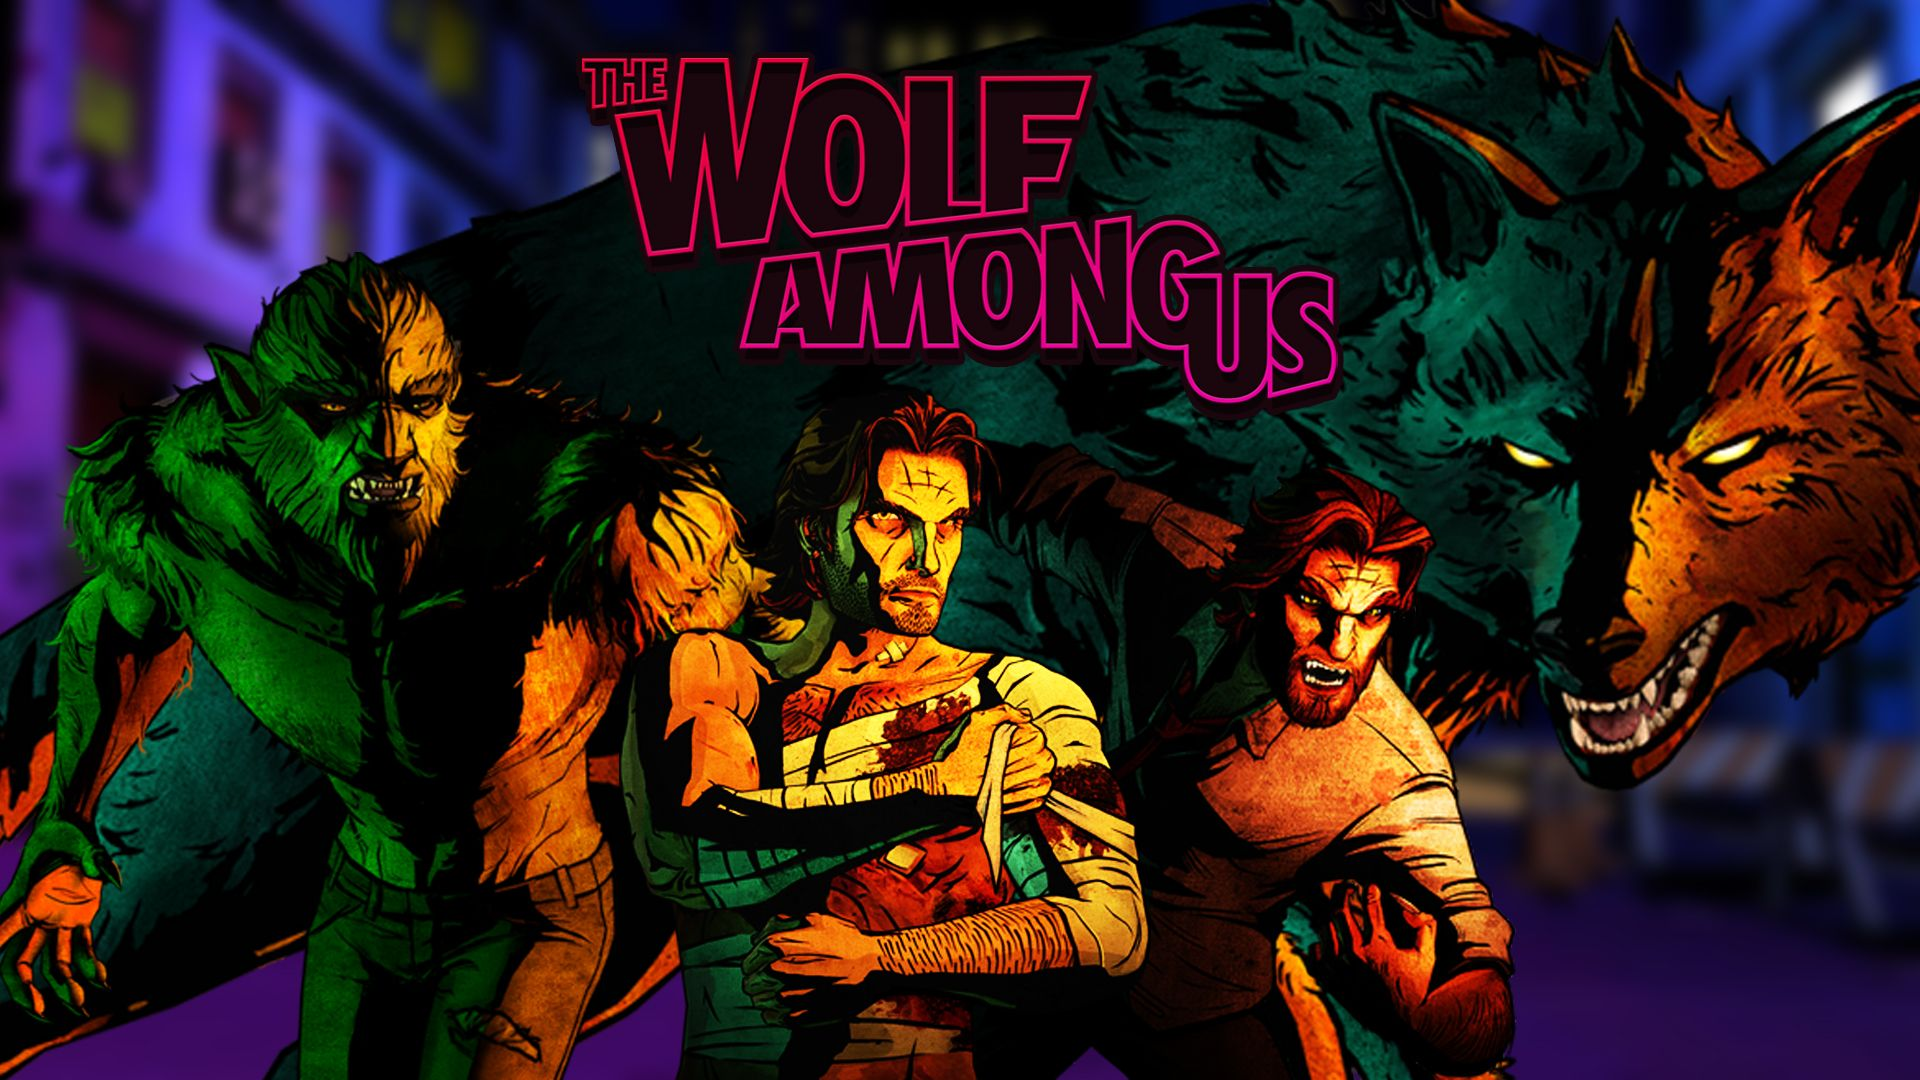 Pin by THØR on Wallpapers The wolf among us, Comic book